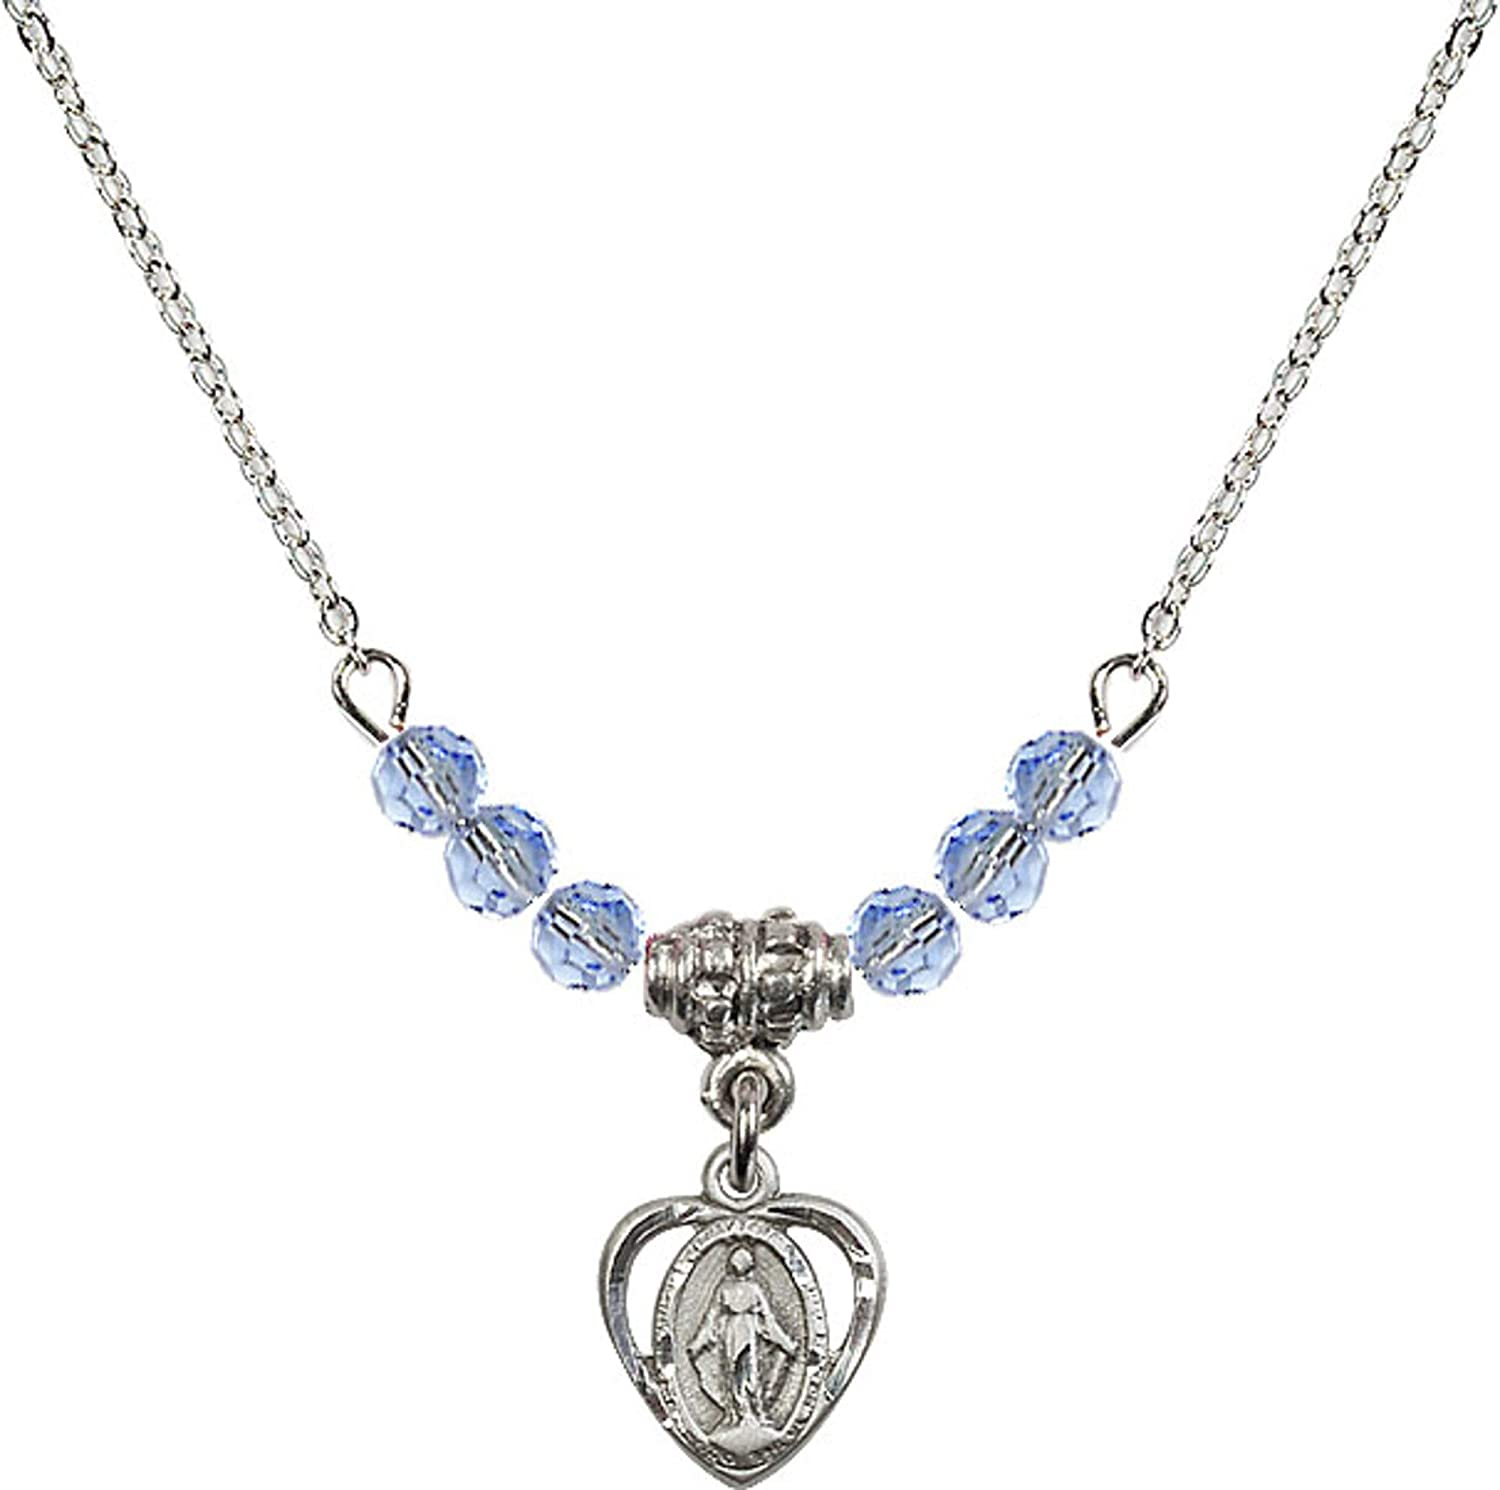 Bonyak Jewelry 18 Inch Rhodium Plated Necklace w// 4mm Light Blue September Birth Month Stone Beads and Miraculous Charm